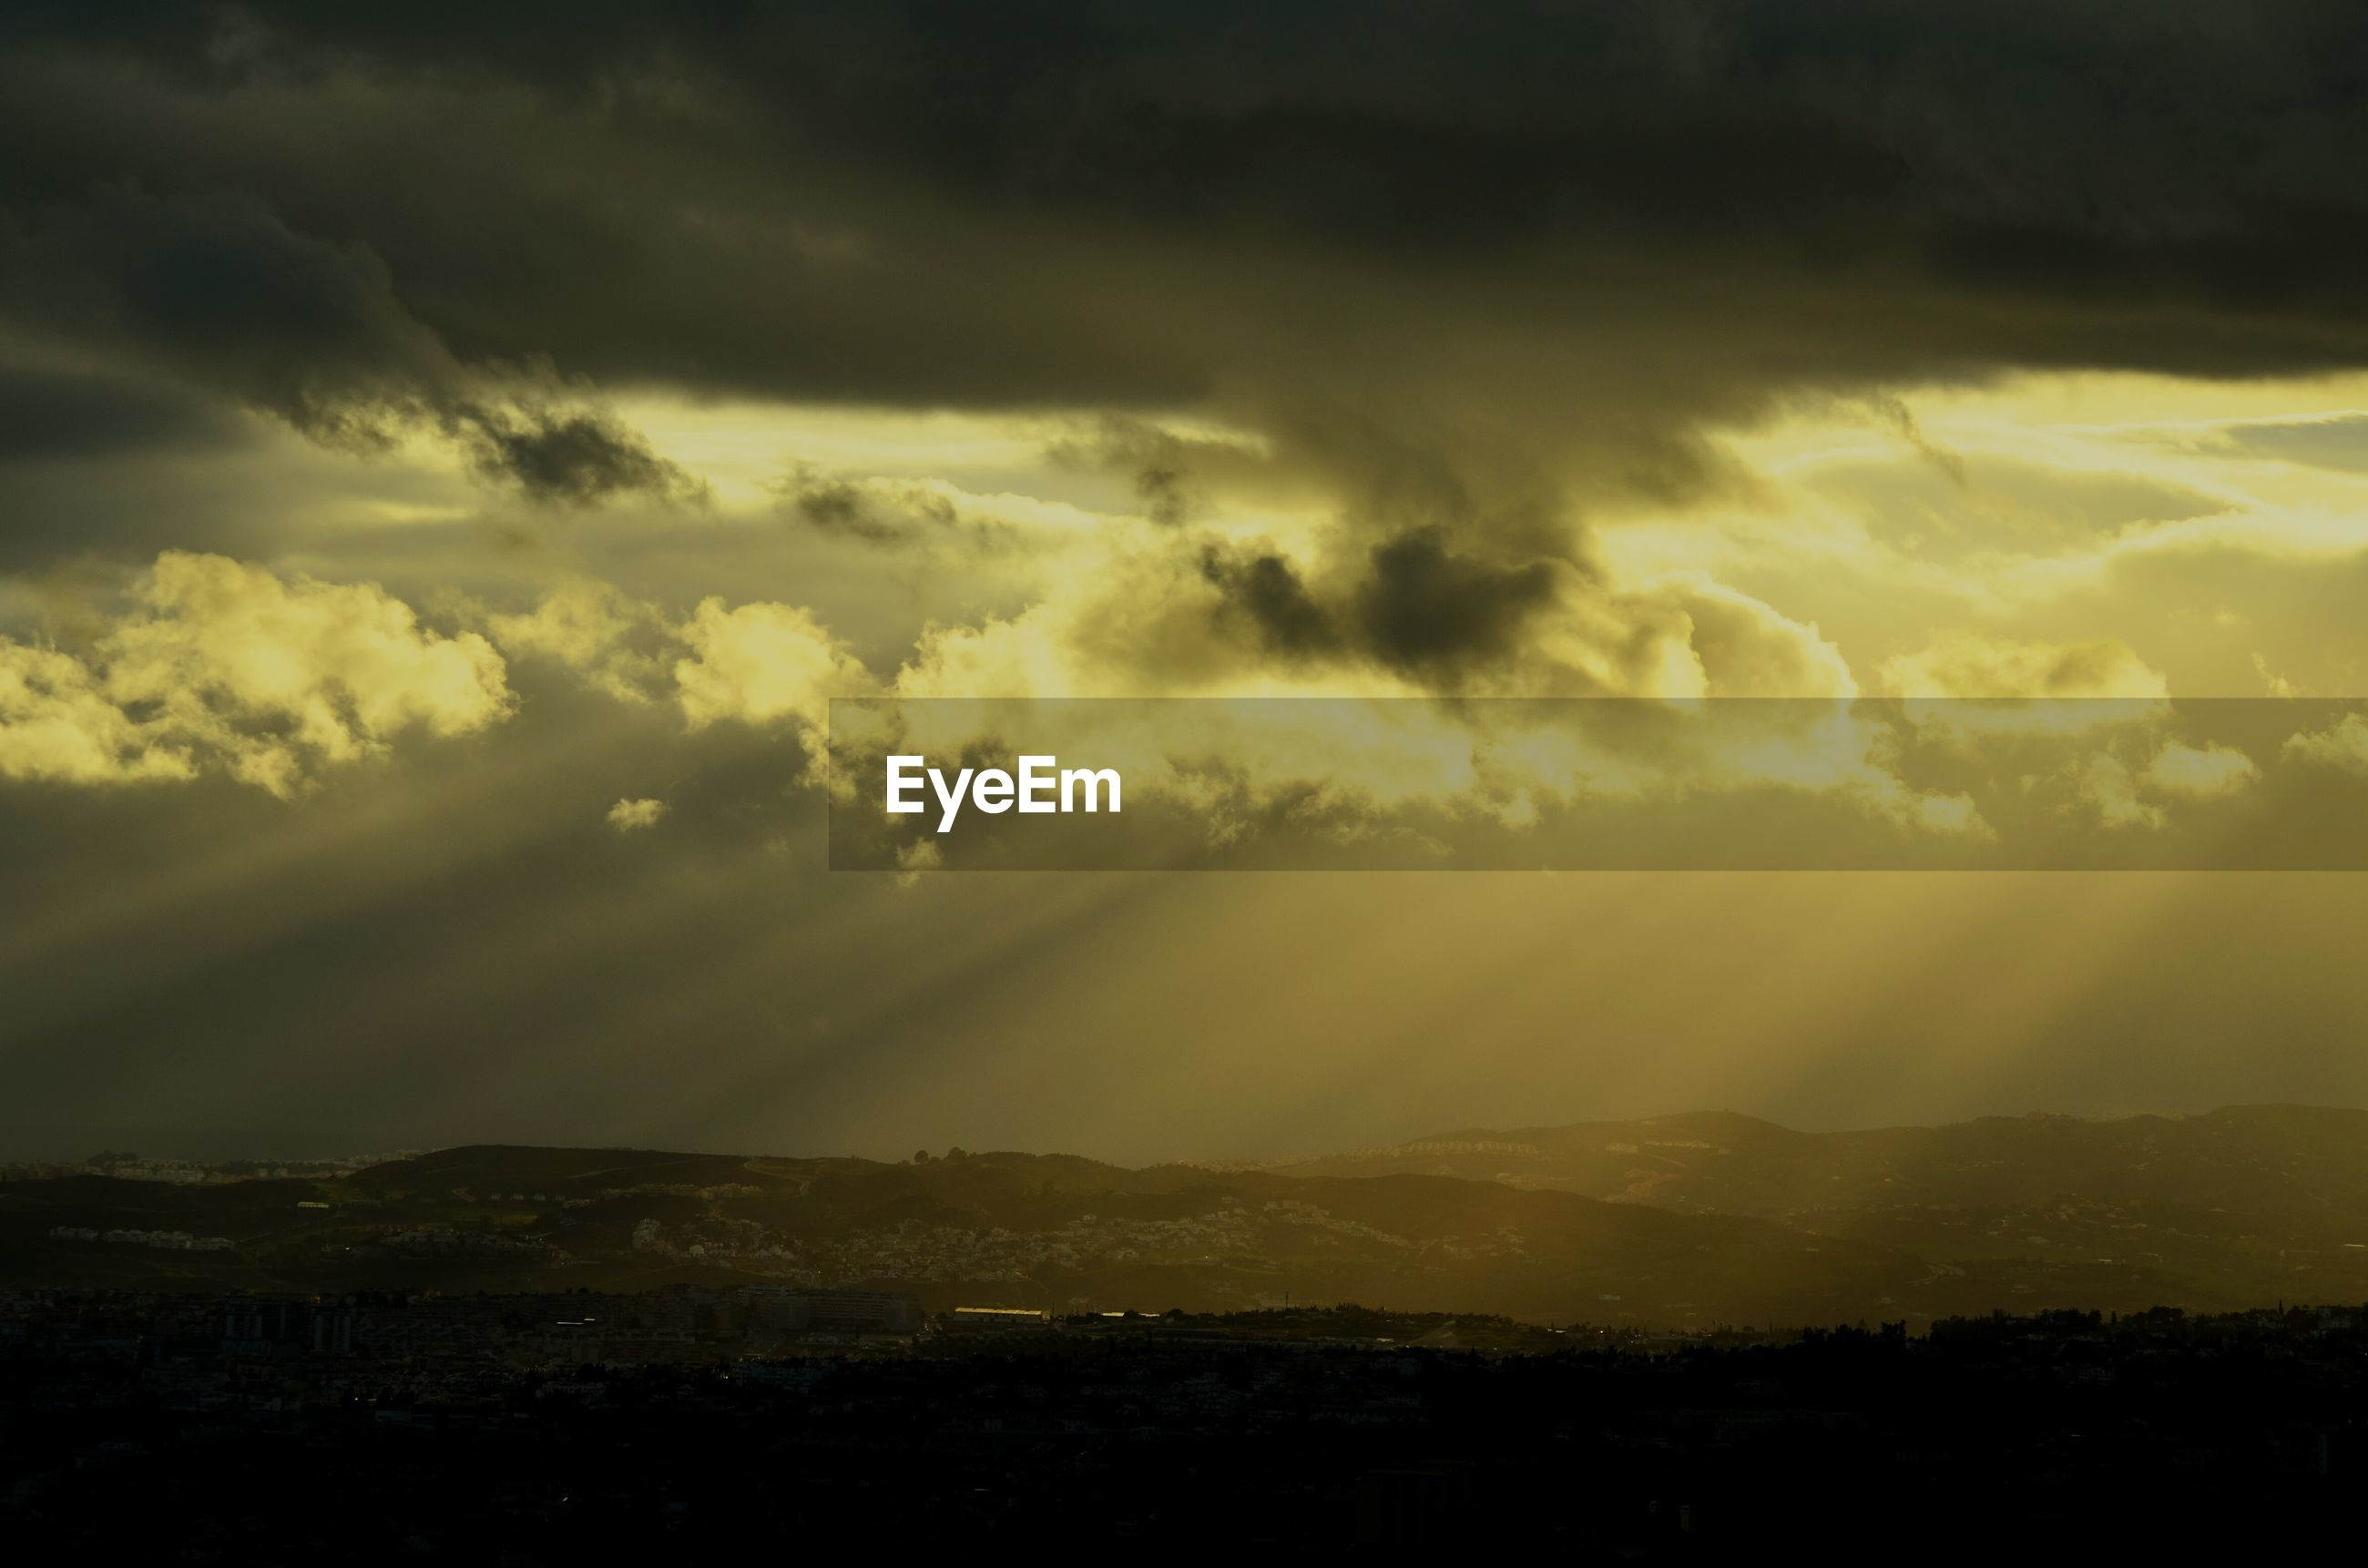 Sunbeams streaming from cloudy sky on landscape during sunset